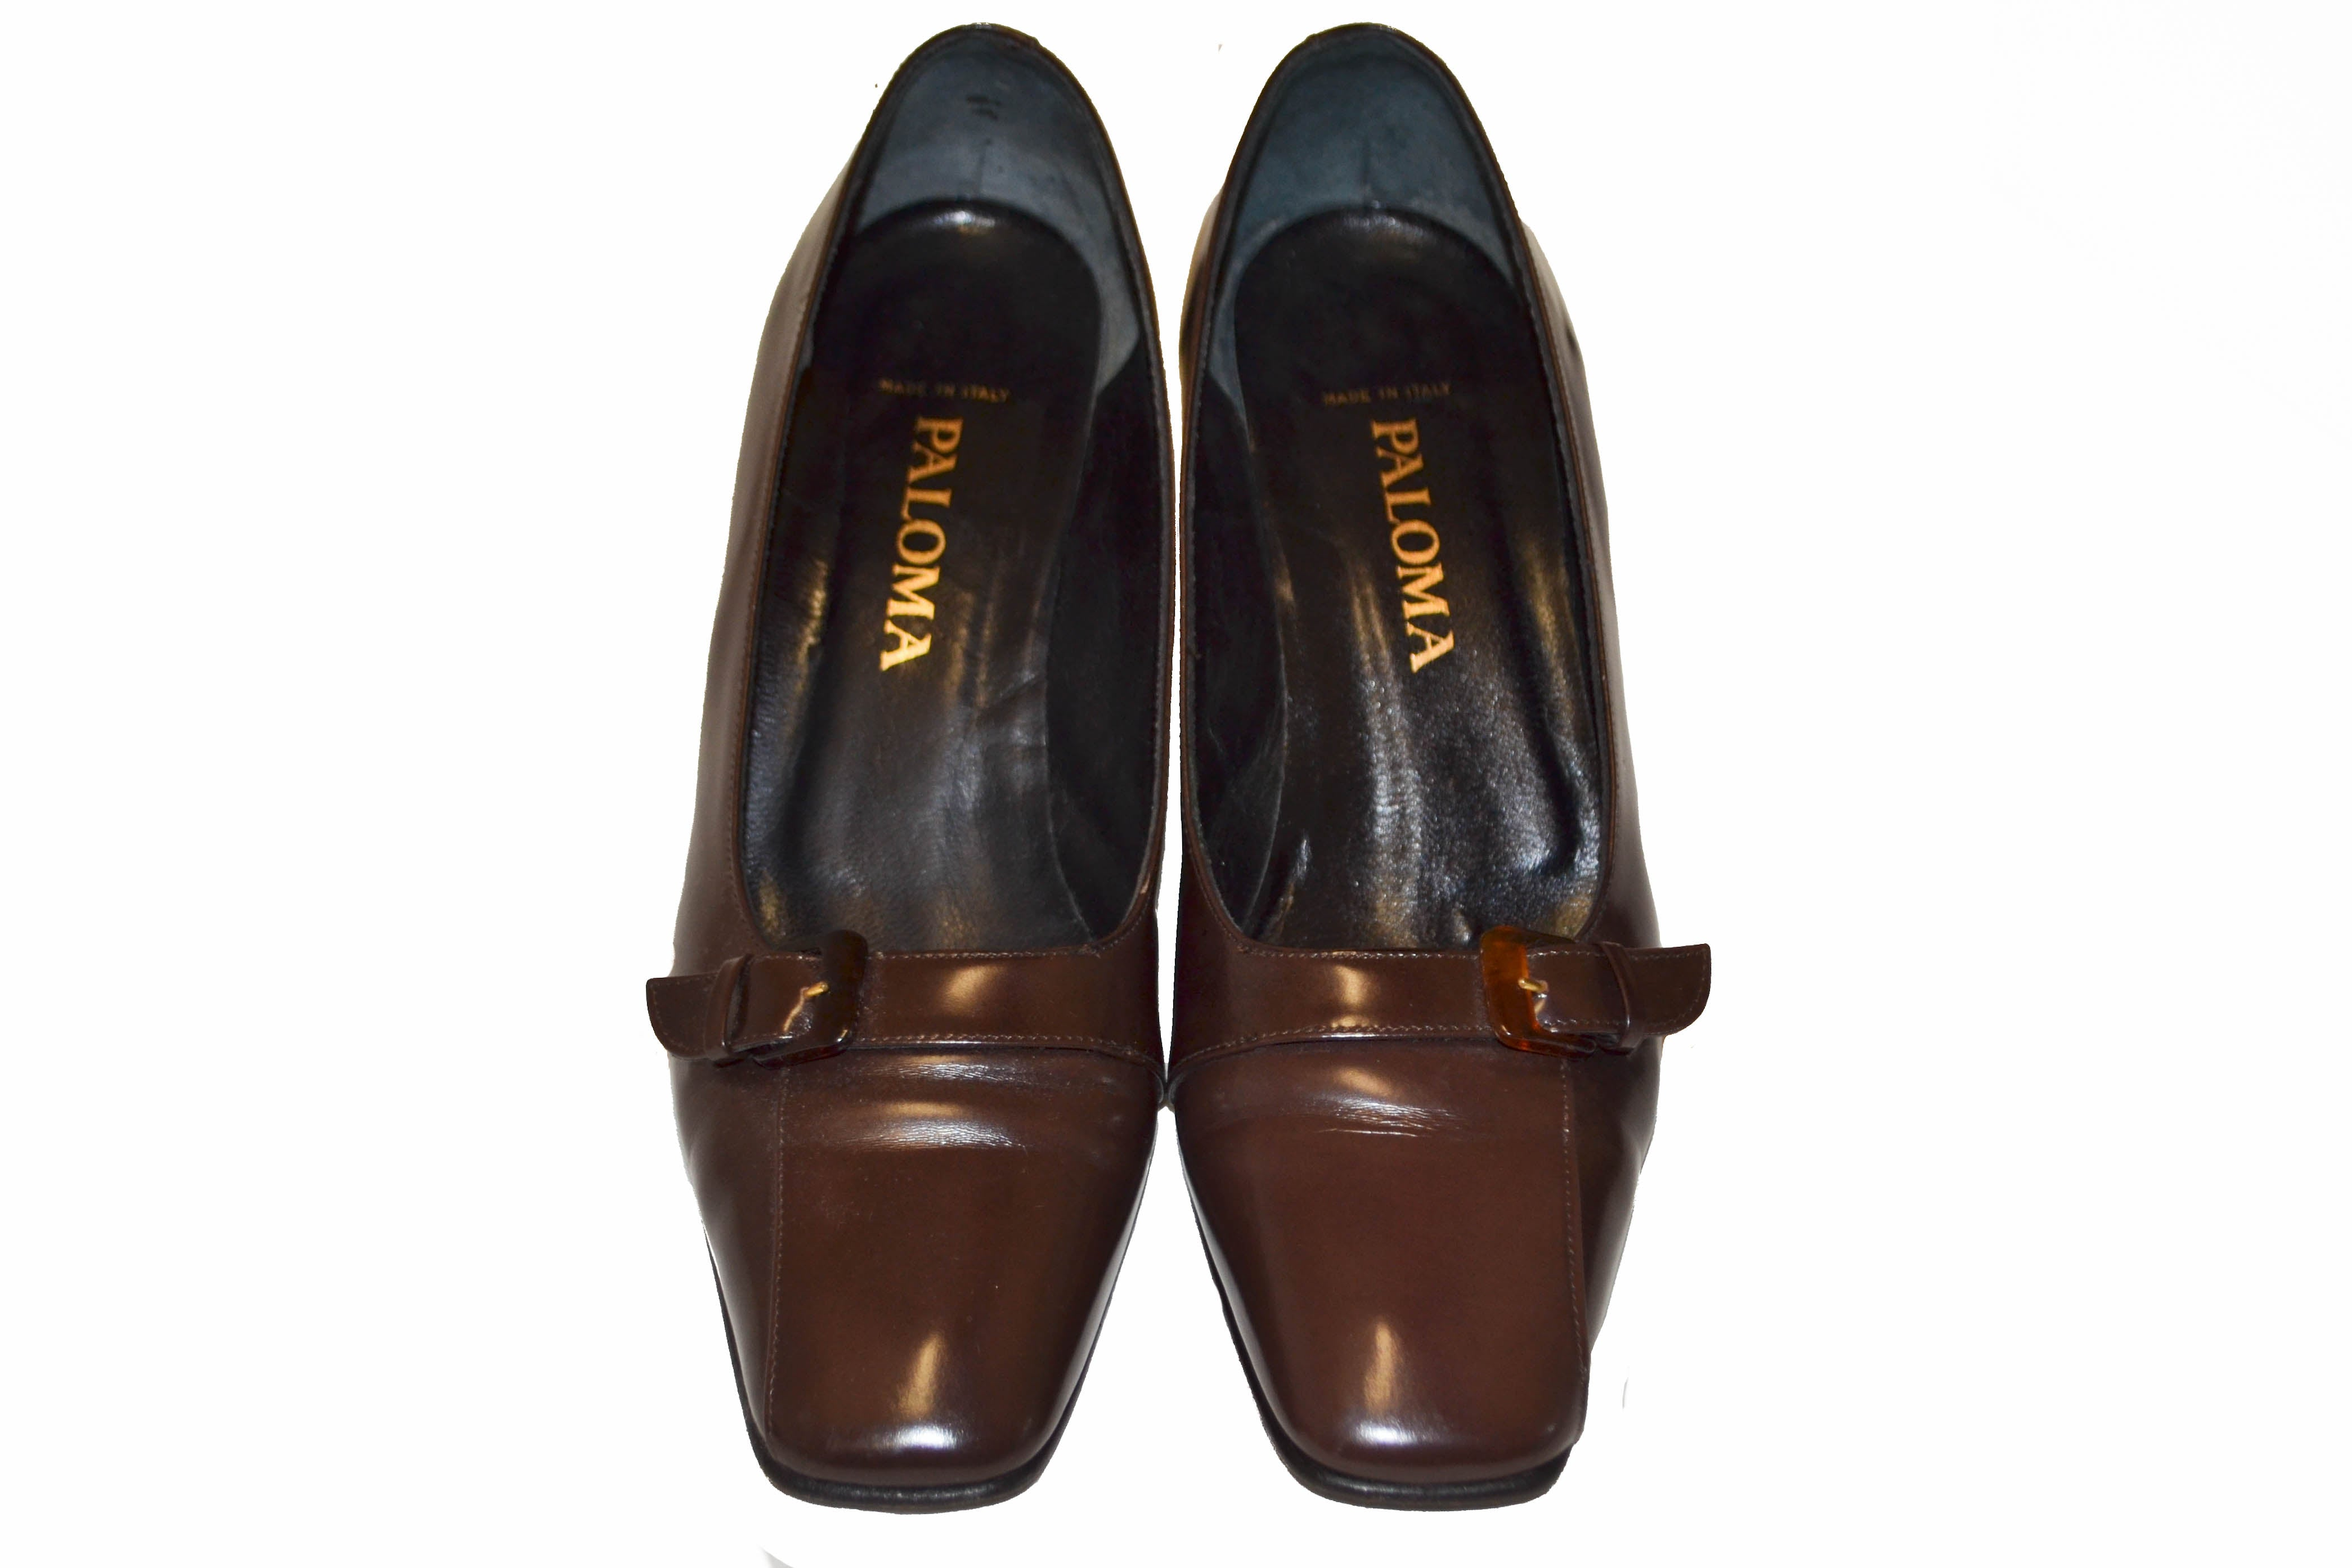 Authentic Paloma Brown Leather Shoes Size 7B